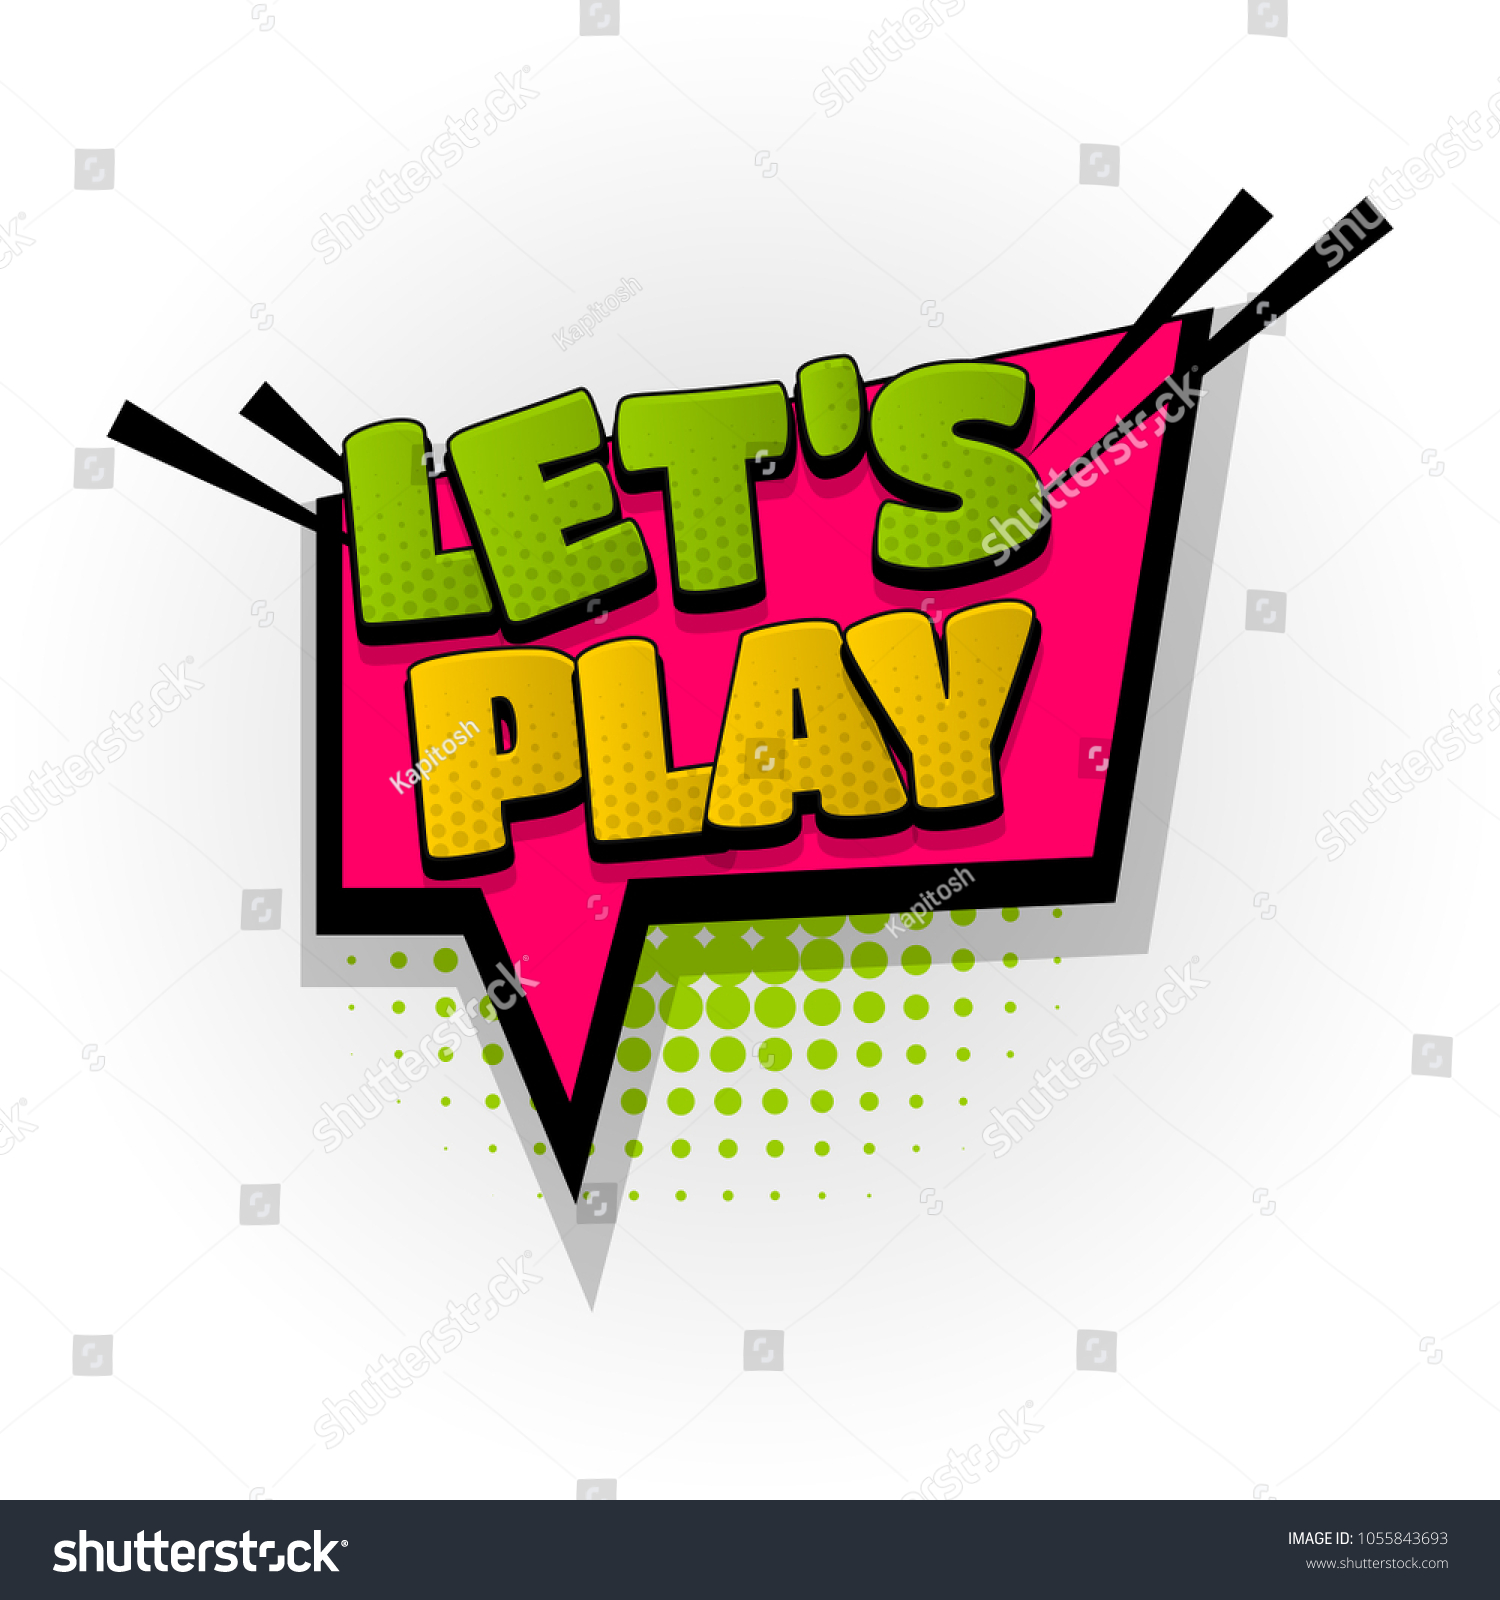 Play Game Win Hand Drawn Pictures Stock Vector 1055843693 - Shutterstock